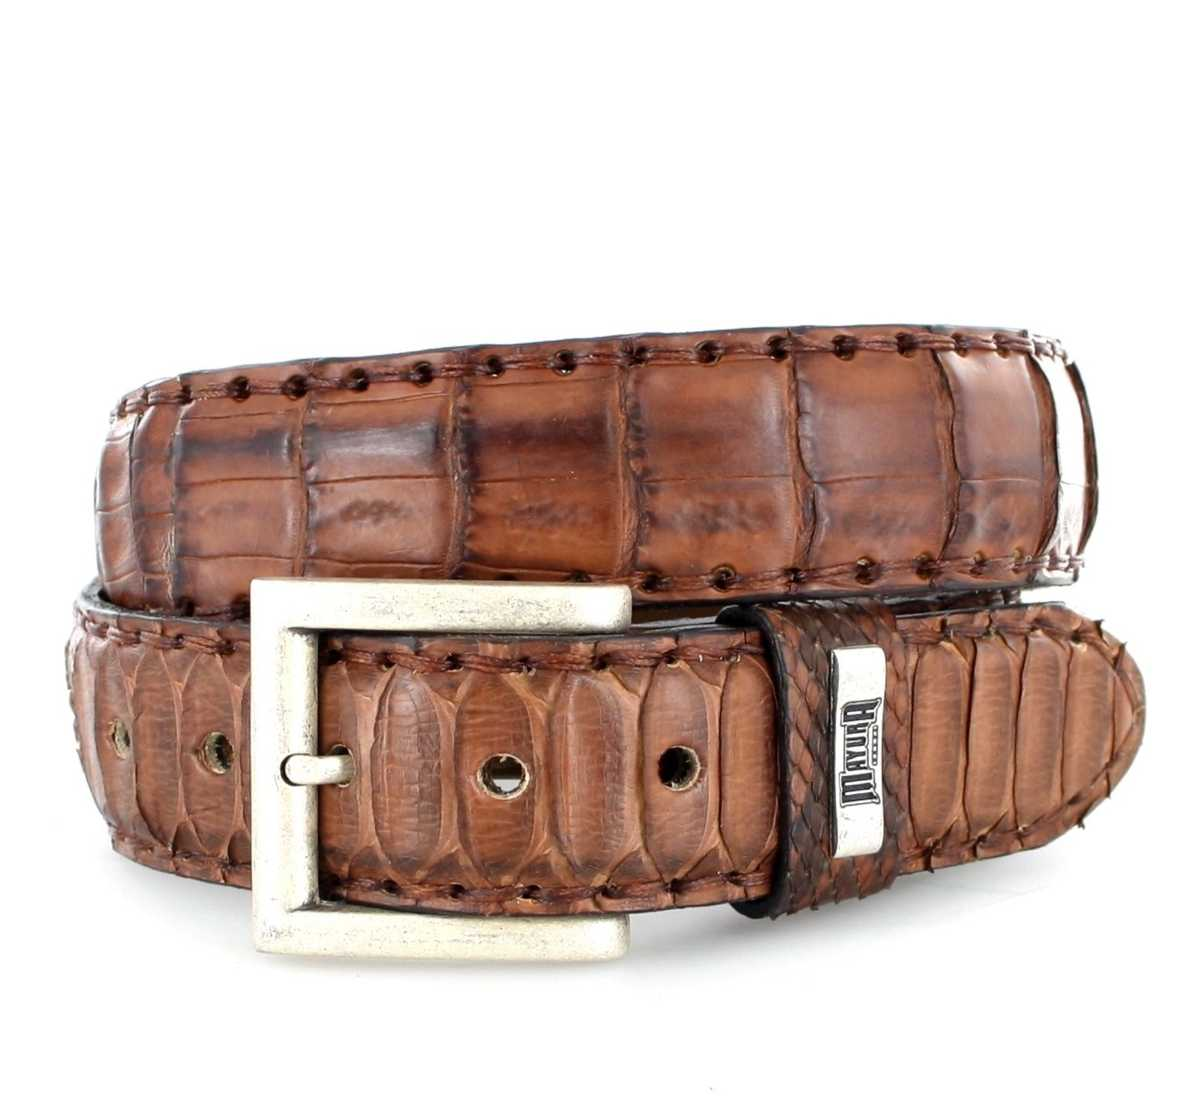 Mayura Boots MB211 Camel Exotic  leather belt - brown